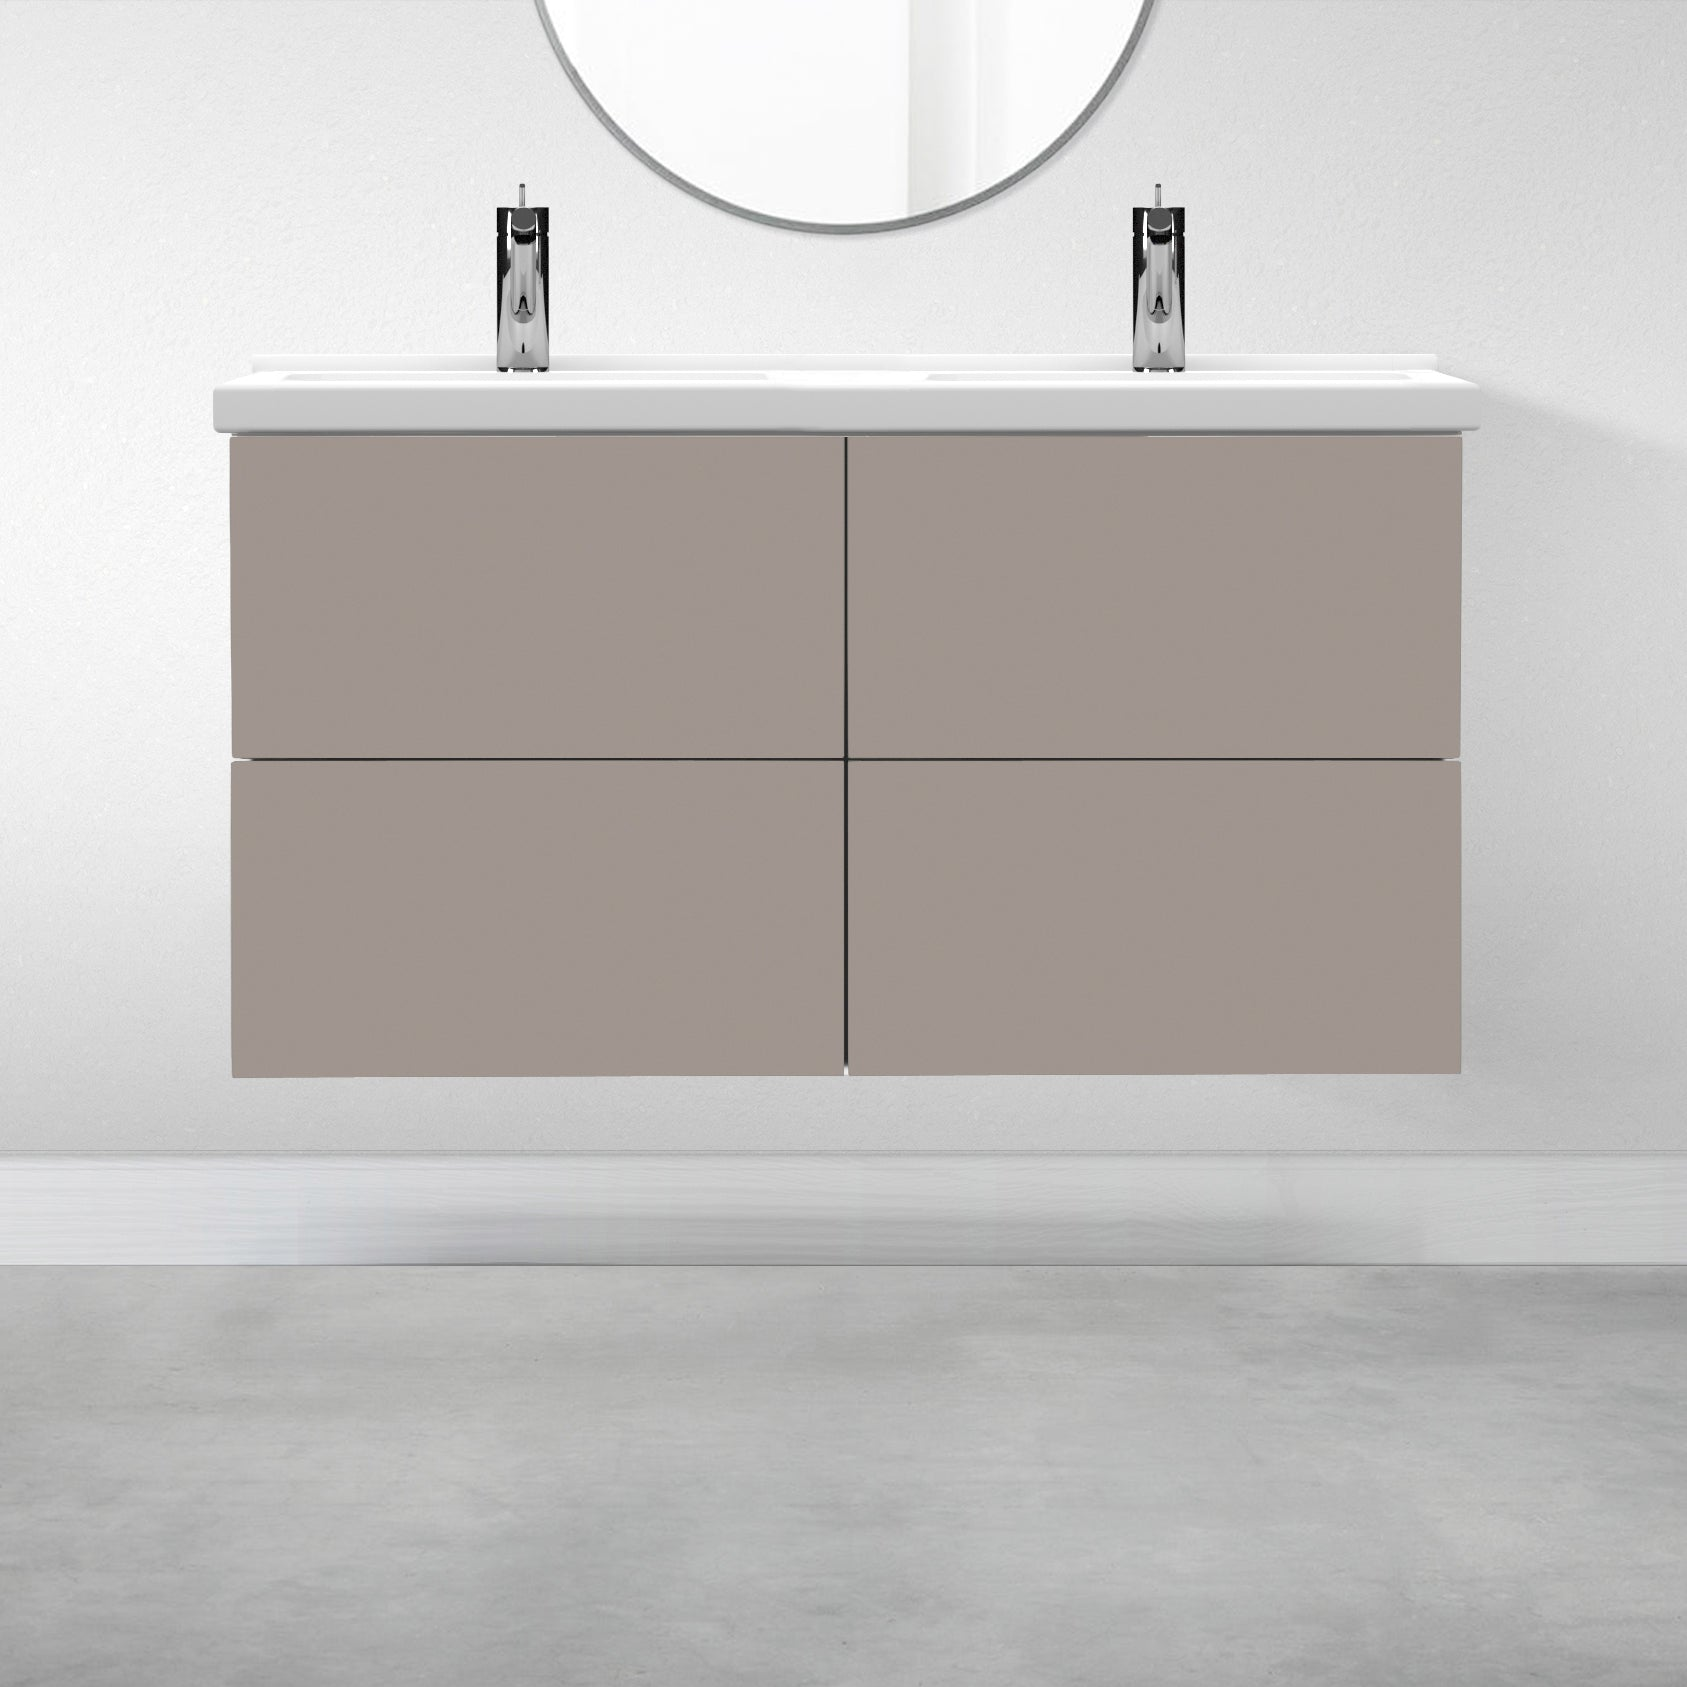 "4 Drawers - 47 1/4"" for Godmorgon Supermatte Slab / Desert Grey"